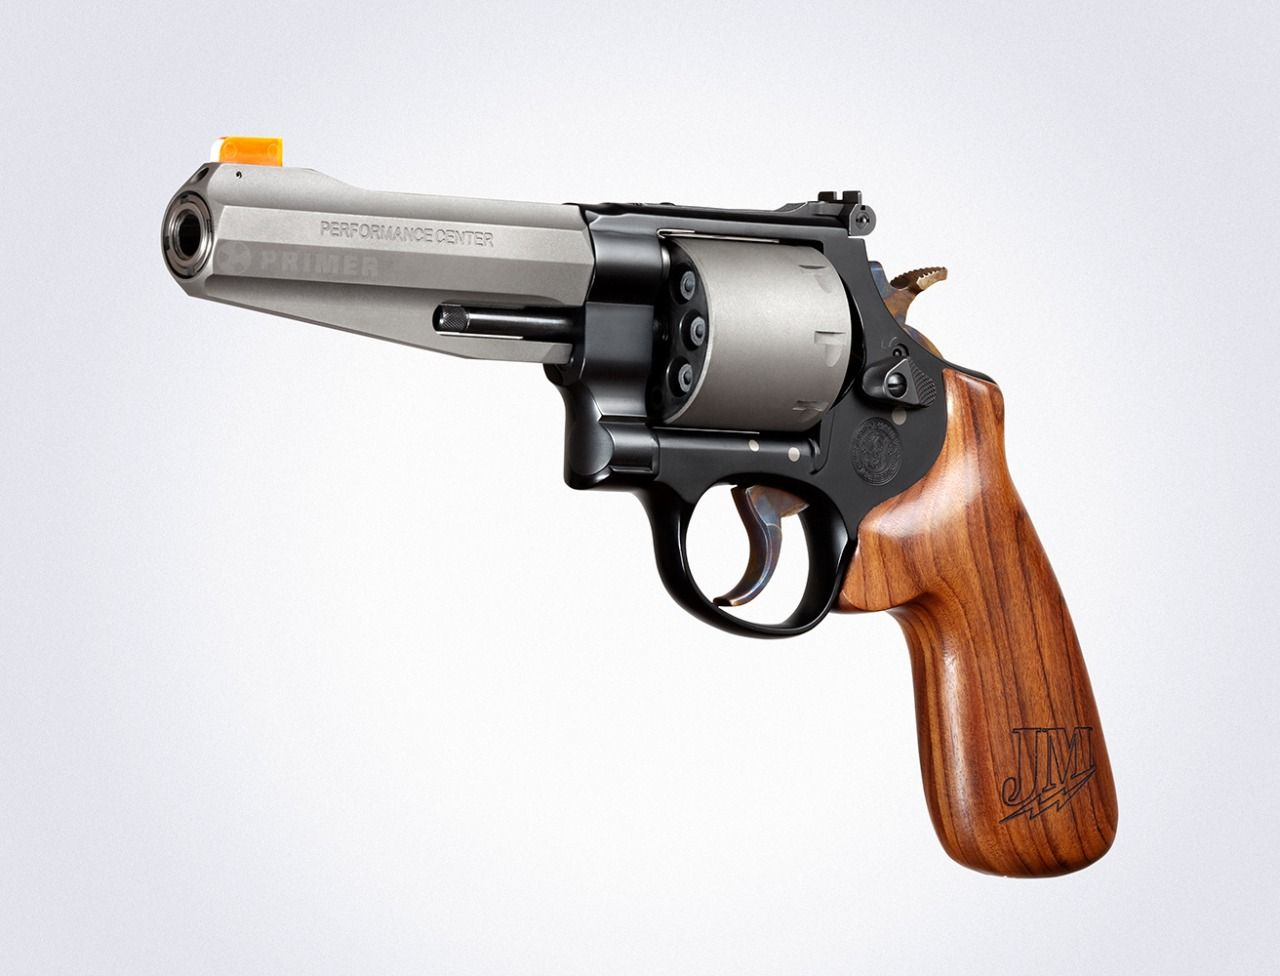 primer-blog: Smith & Wesson Performance Center Model 327 JM (Jerry